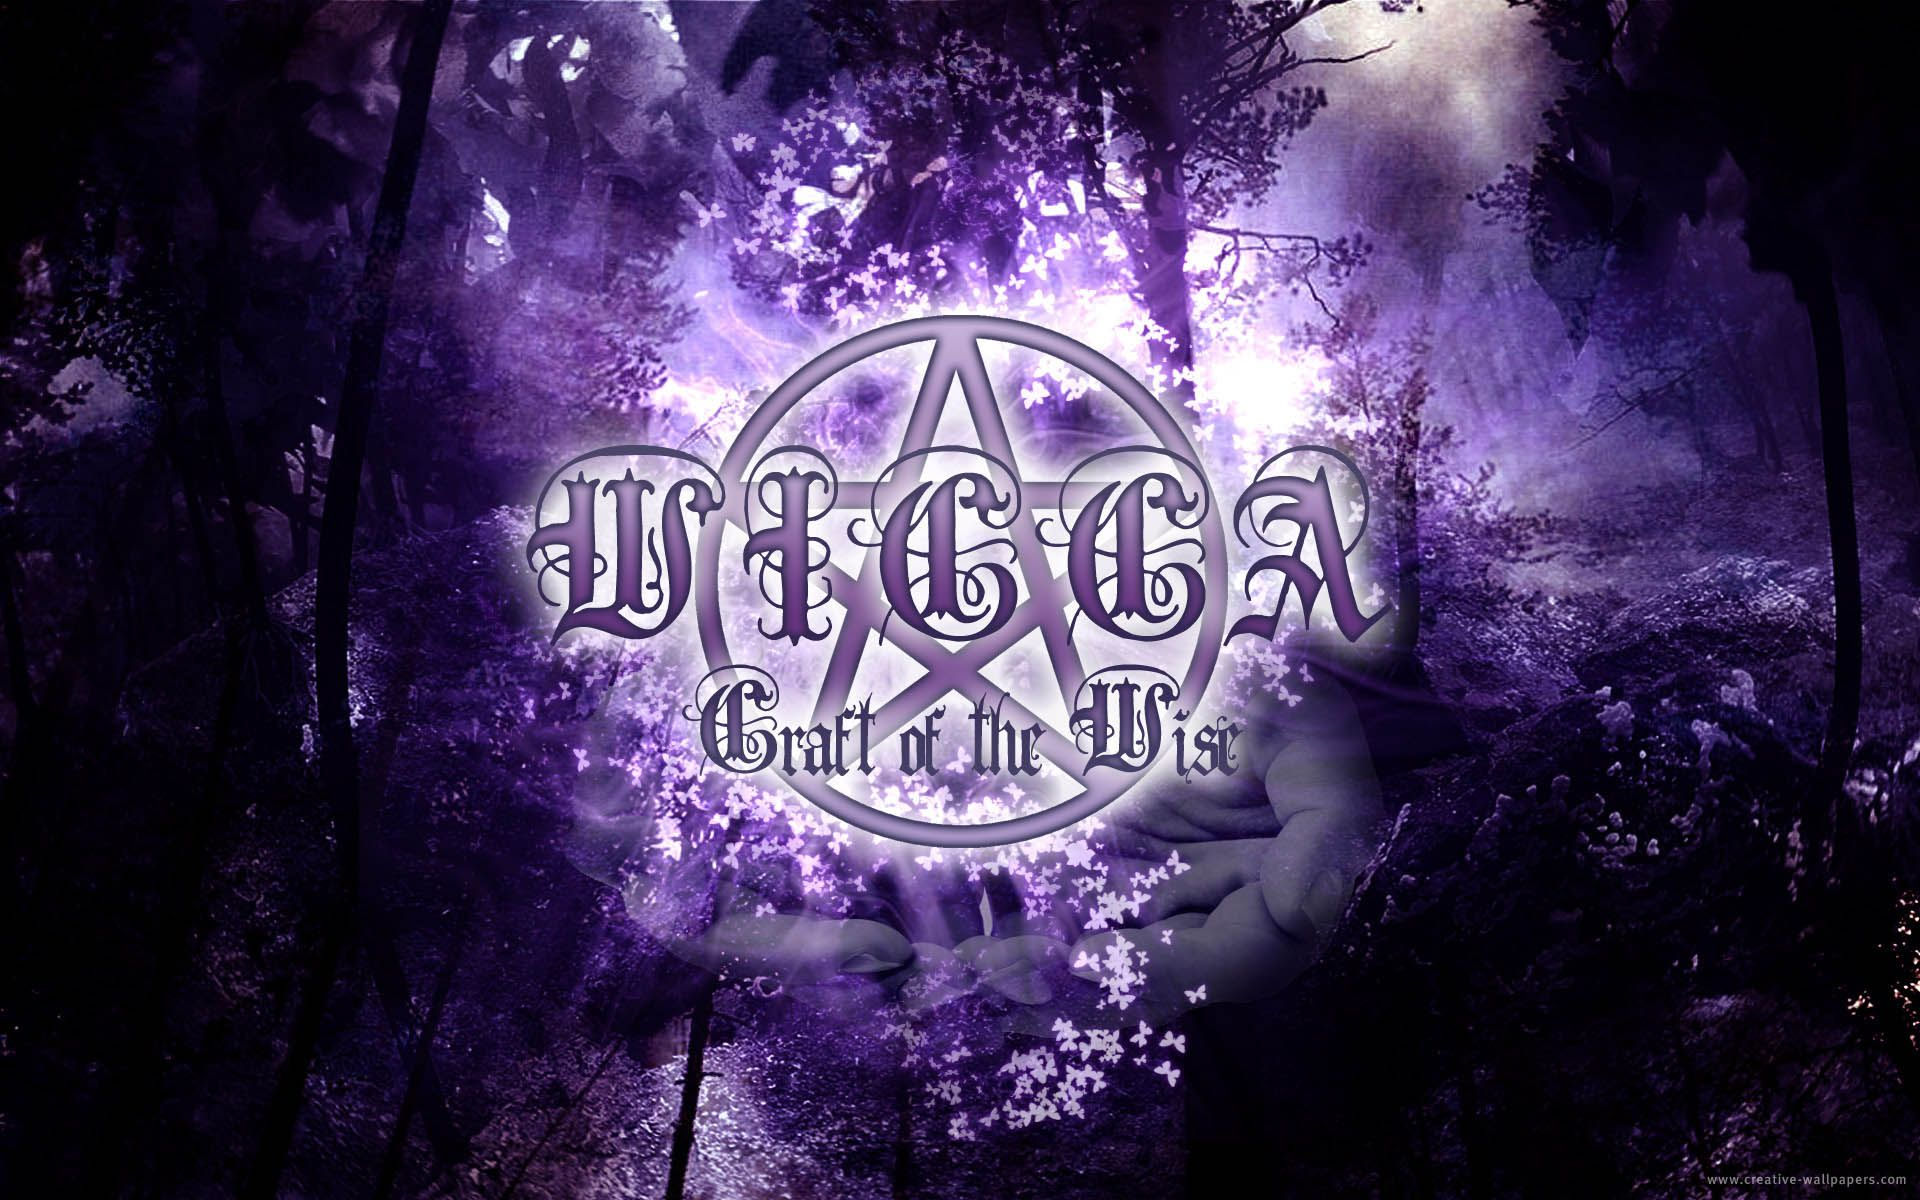 Image Detail For Wicca Free Desktop Backgrounds From Us At Creative Wallpapers Wiccan Wallpaper Wiccan Symbols Wiccan Art